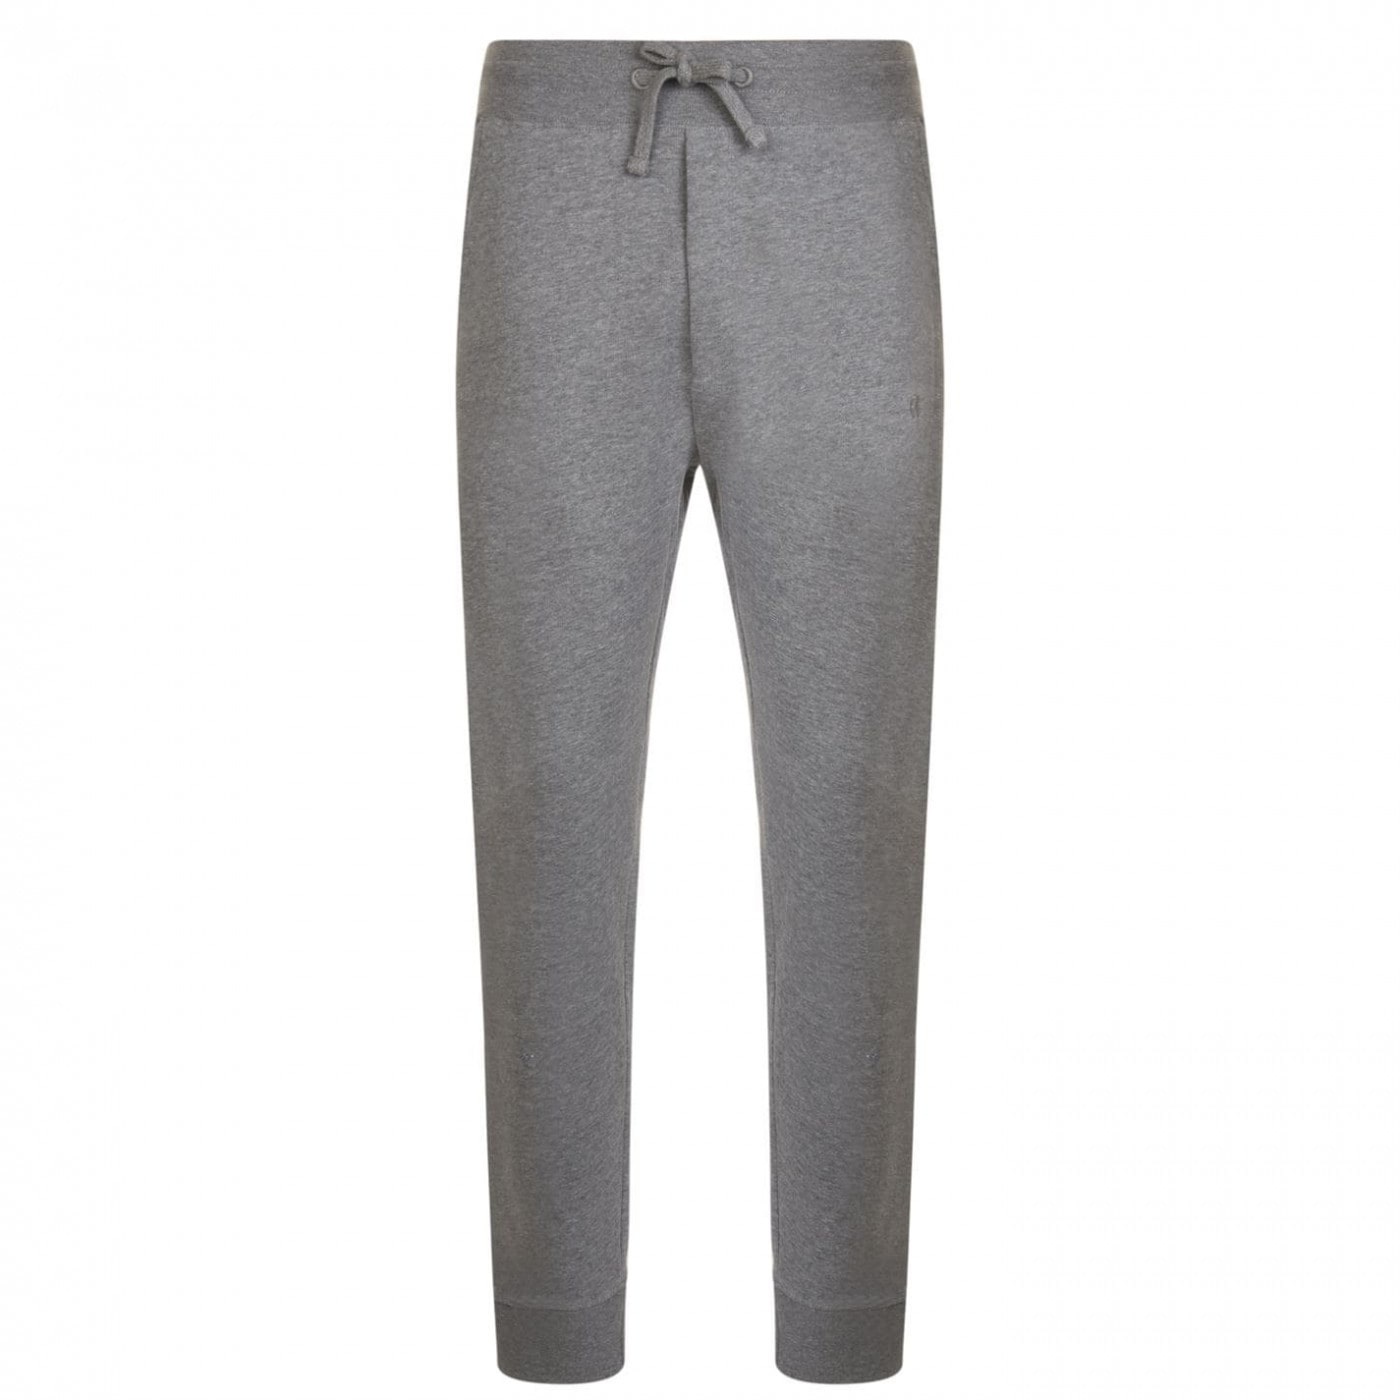 French Connection Jogging Bottoms